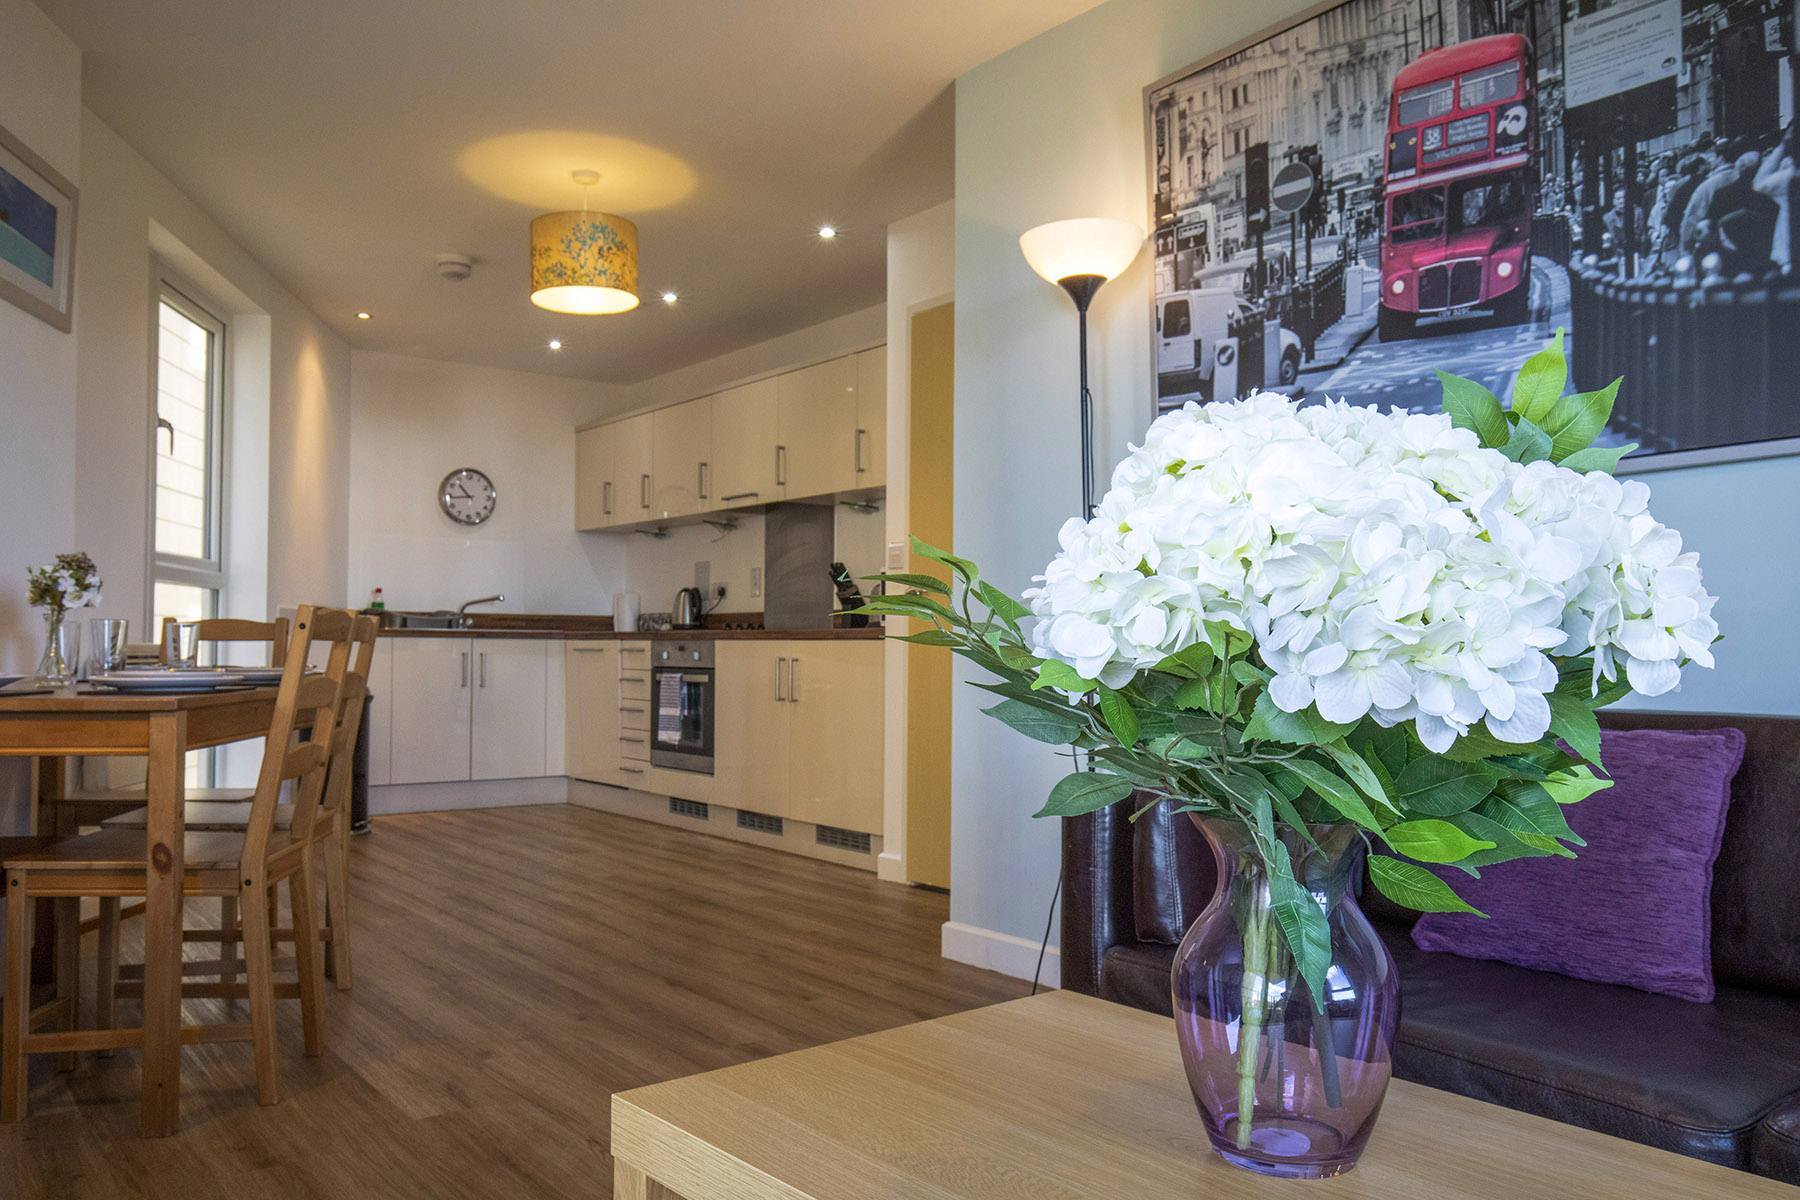 Kitchen/diner at New Central Apartments, Centre, Woking - Citybase Apartments